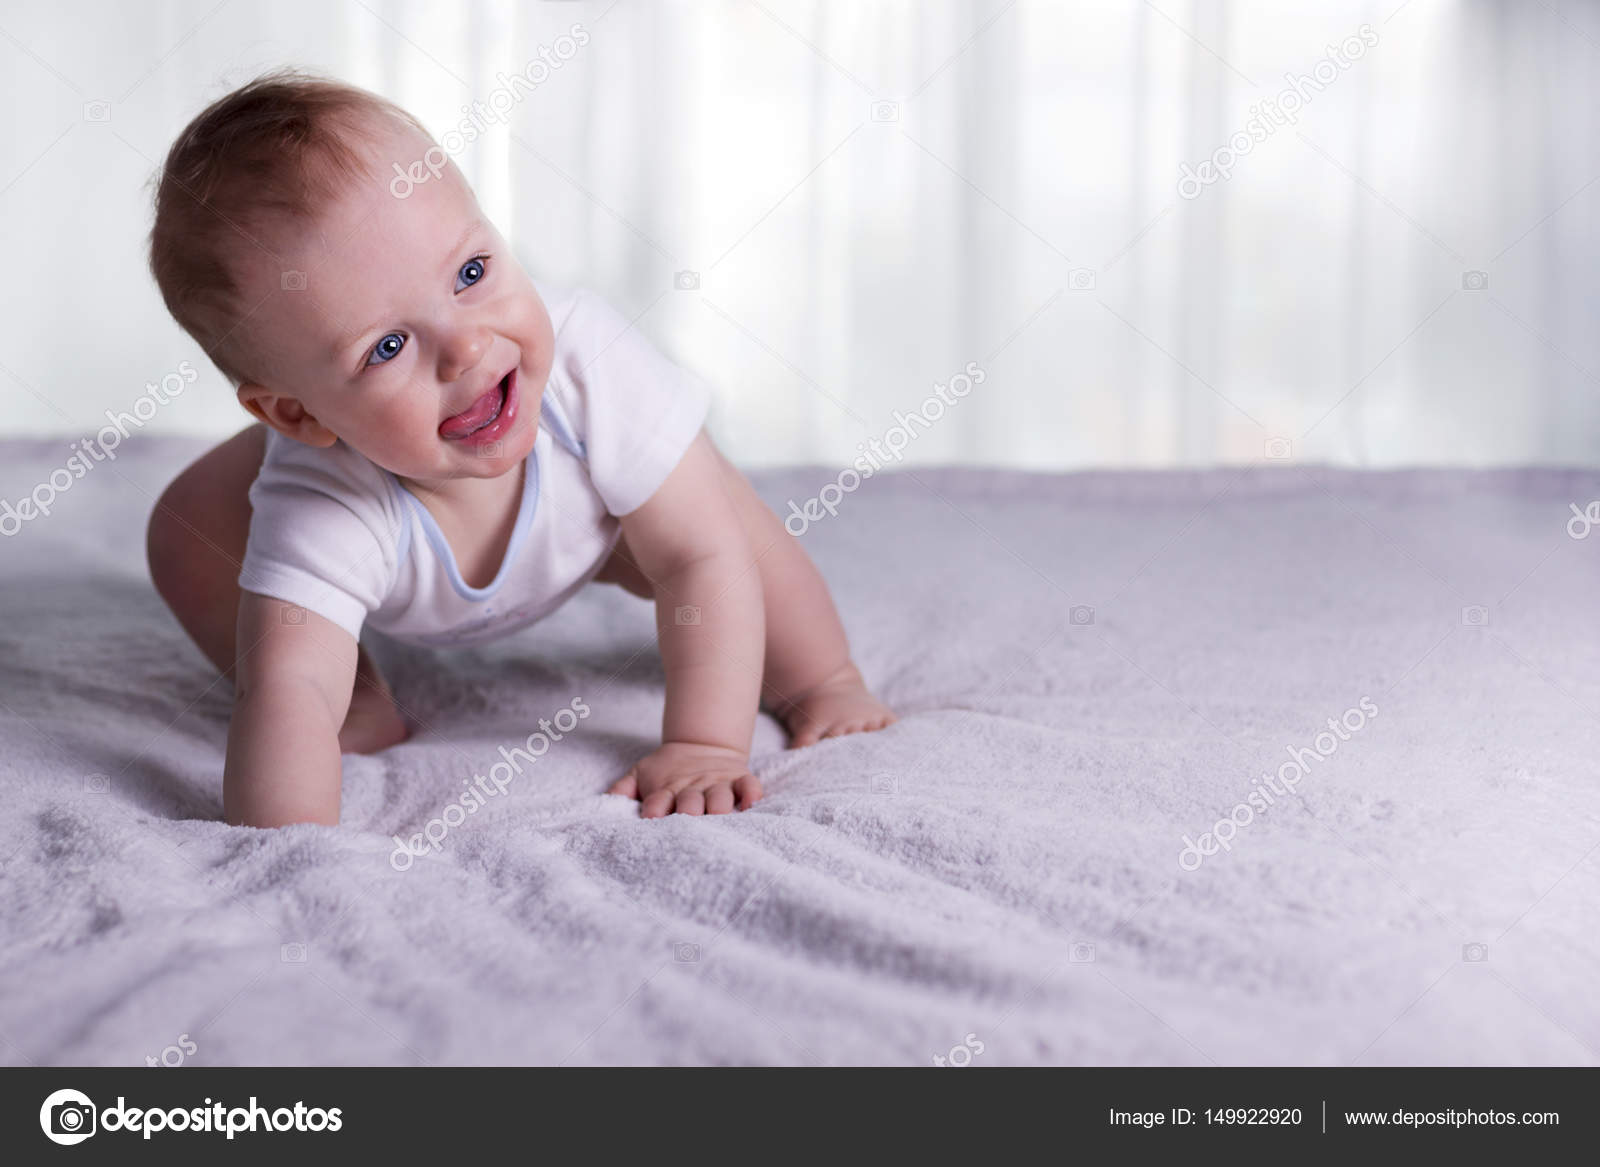 first steps of funny baby boy. cute infant kid begining to toddle